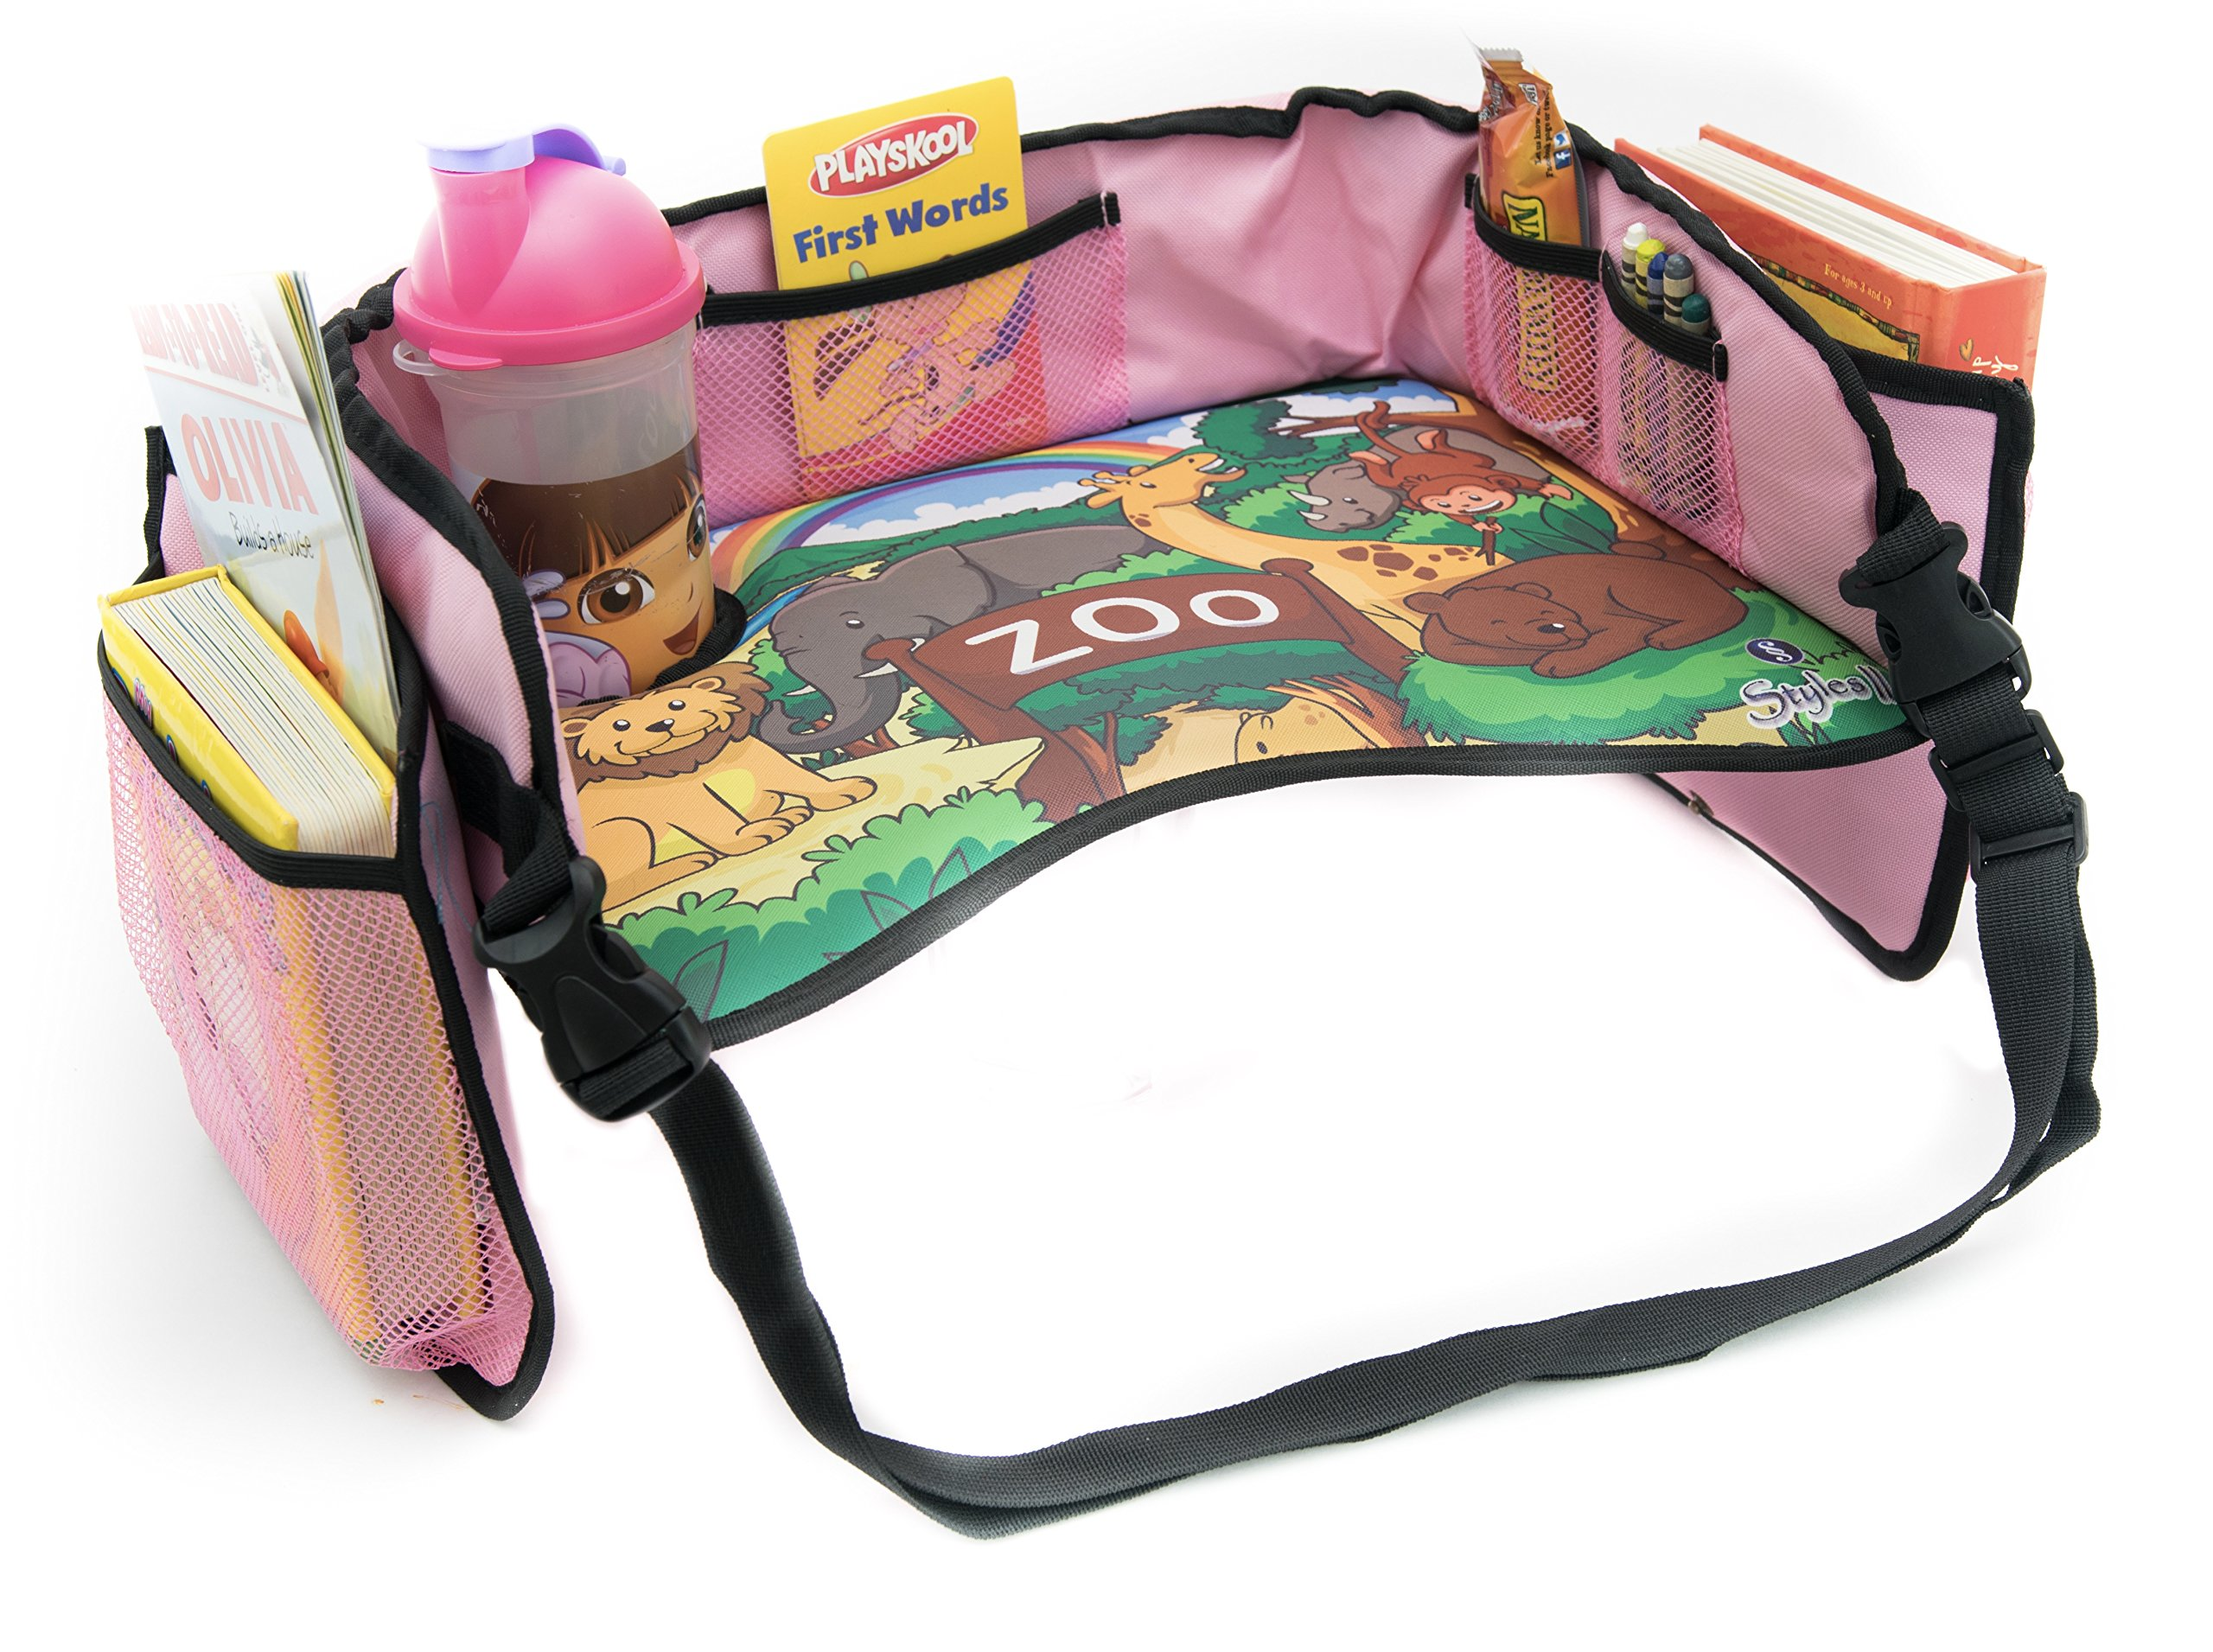 Styles II Toddler Car Seat Travel Activity Lap Tray - Solid Reinforced Surface, Cup Holder, Mesh Pockets, Sturdy Side Walls for Snacks & Drawing - Kids Play & Learn Tray.